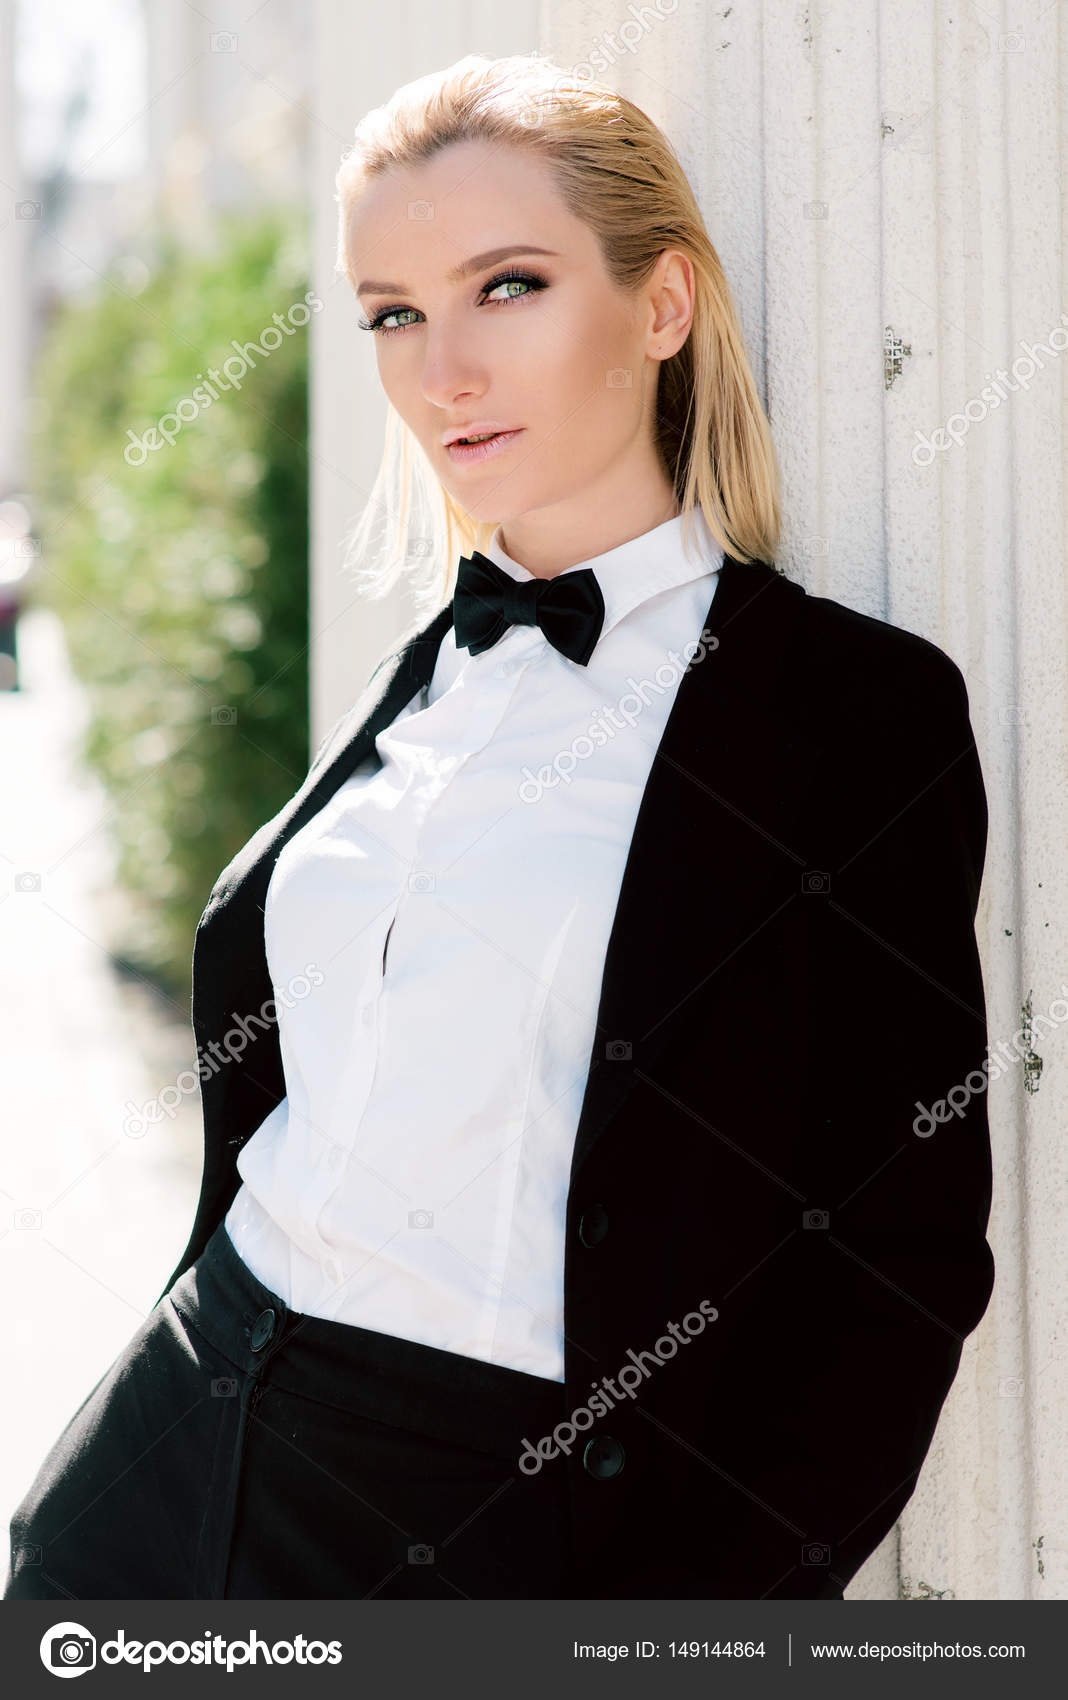 Women Wearing Suit And Bow Tie | www.topsimages.com